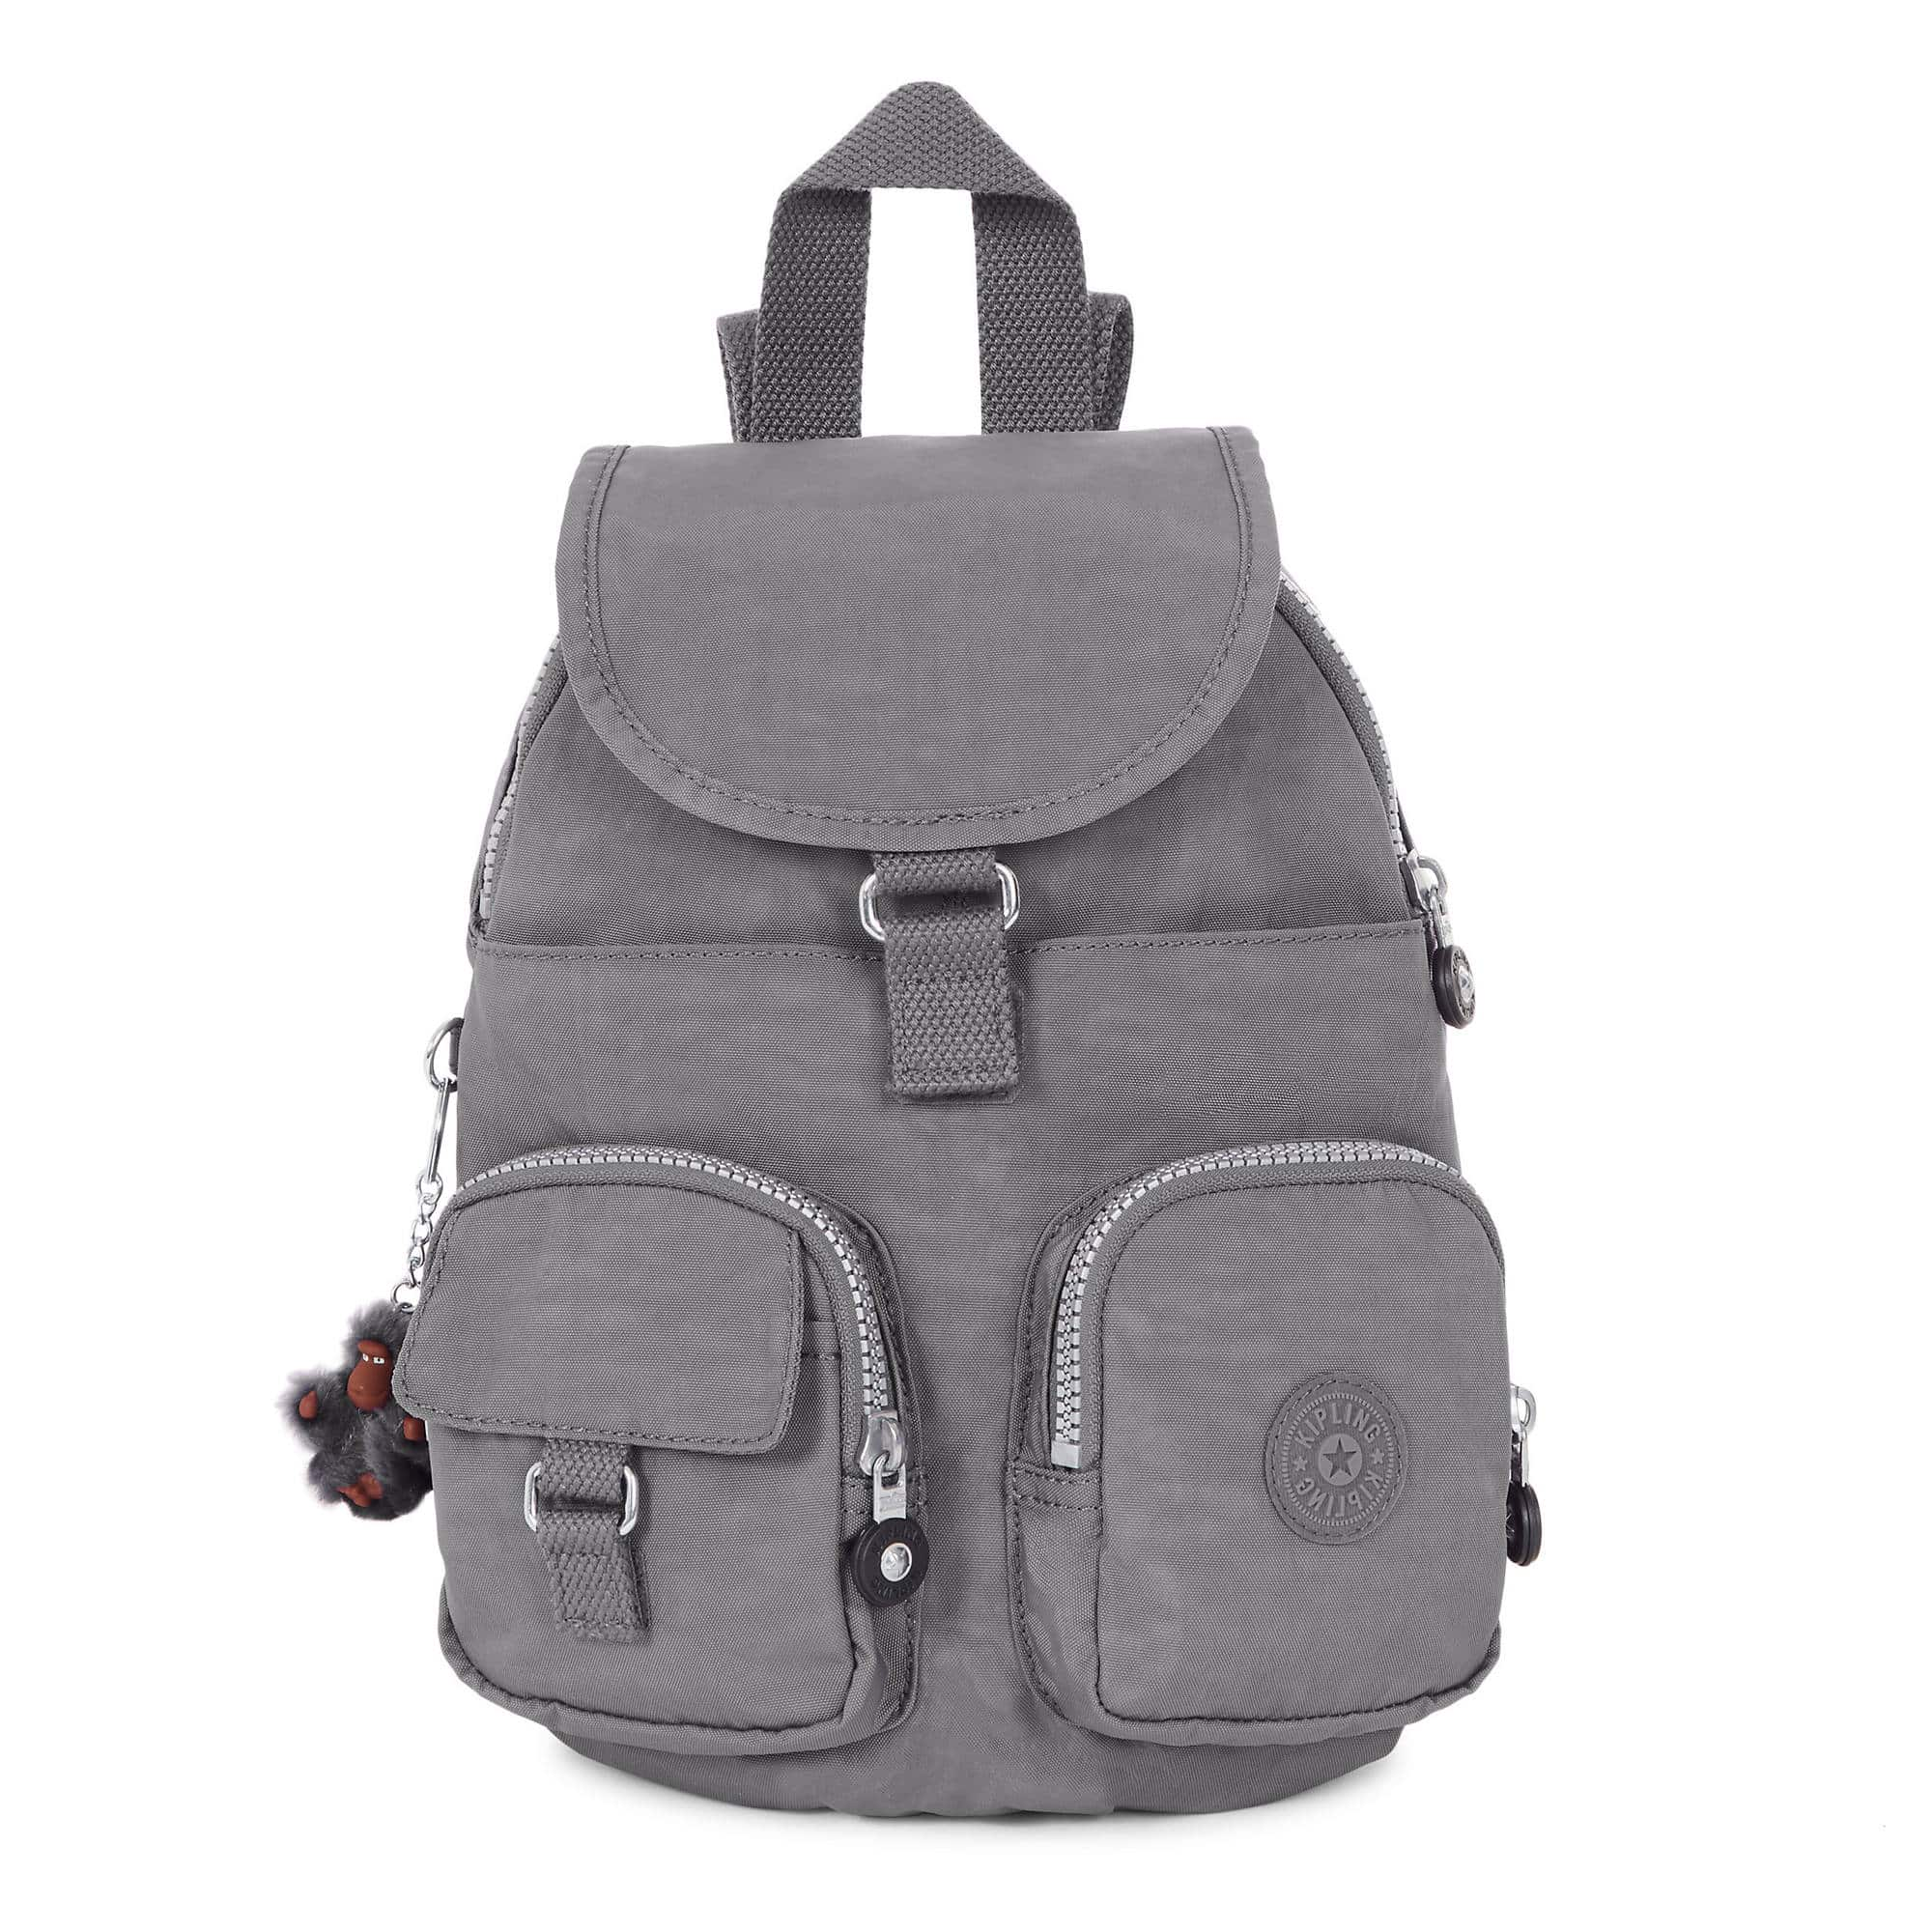 Kipling Lovebug Printed Small Backpack - $34.99